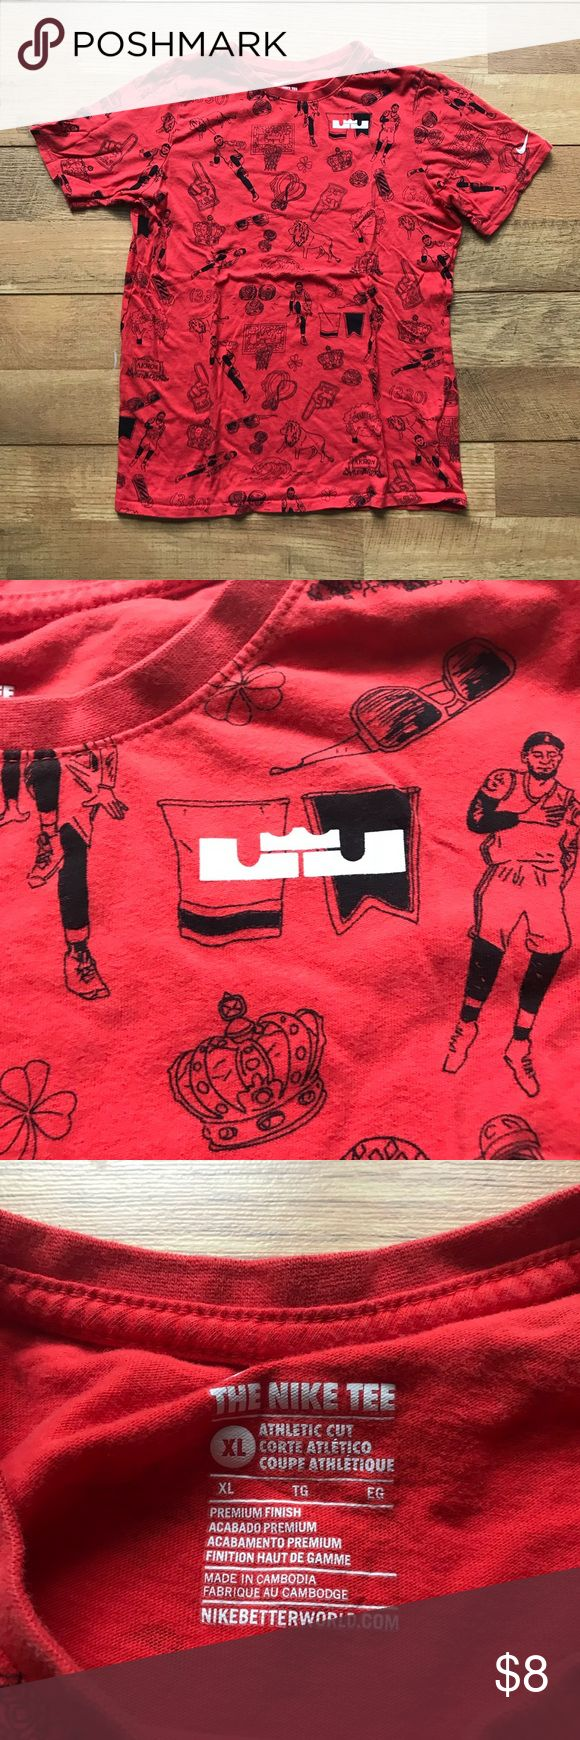 Nike Lebron James shirt Red with black design • some wash wear Nike Shirts & Tops Tees - Short Sleeve